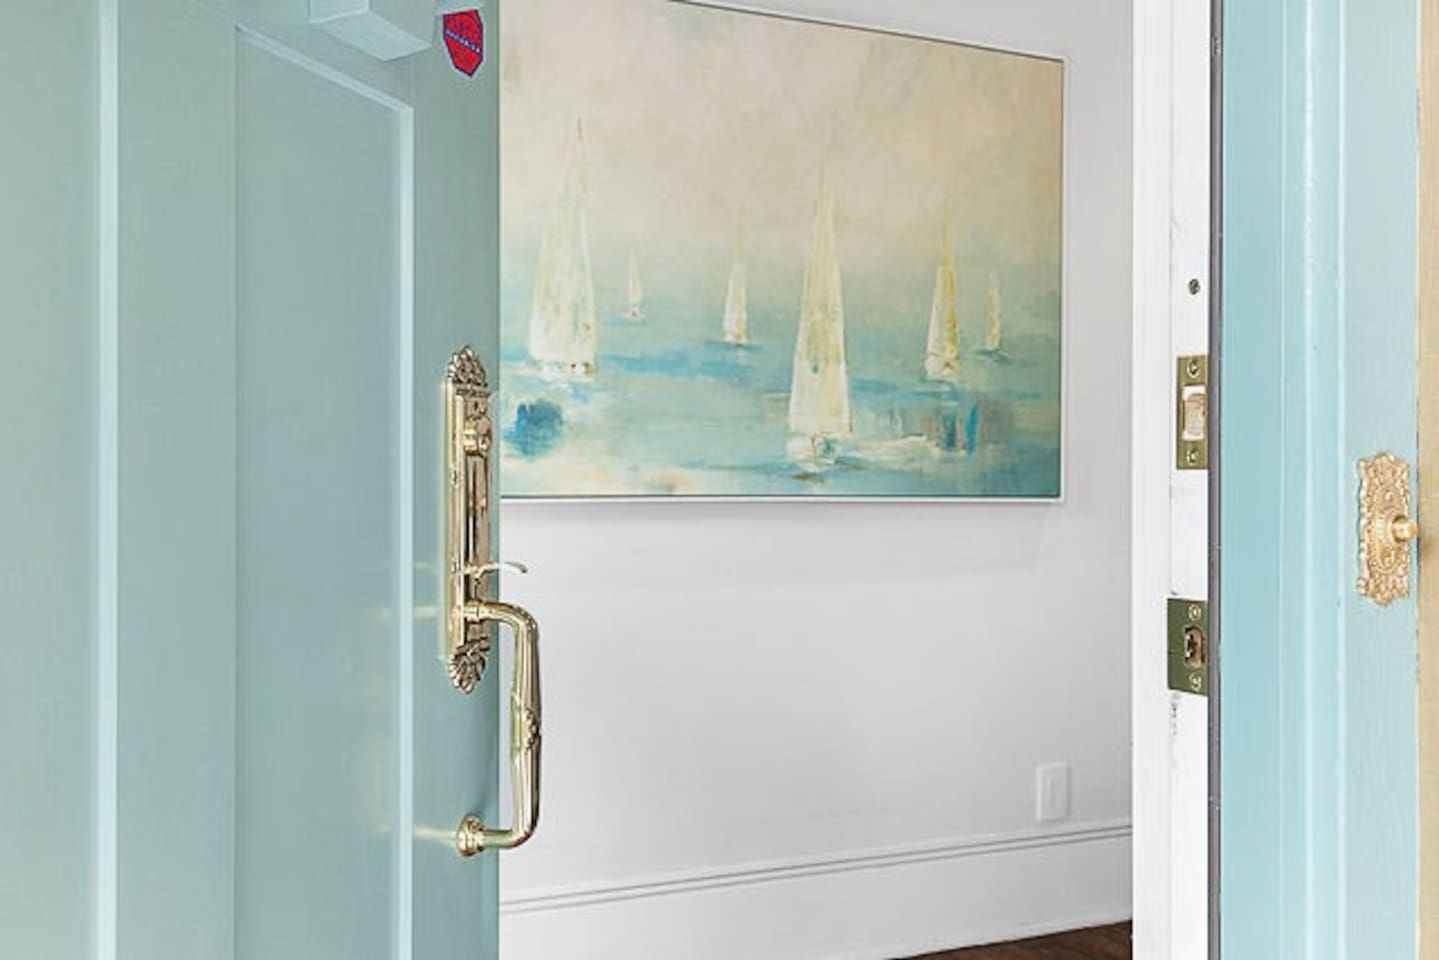 We look forward to welcoming you to our 4 bedroom decorator's dream in Jamaica Plain, Boston!